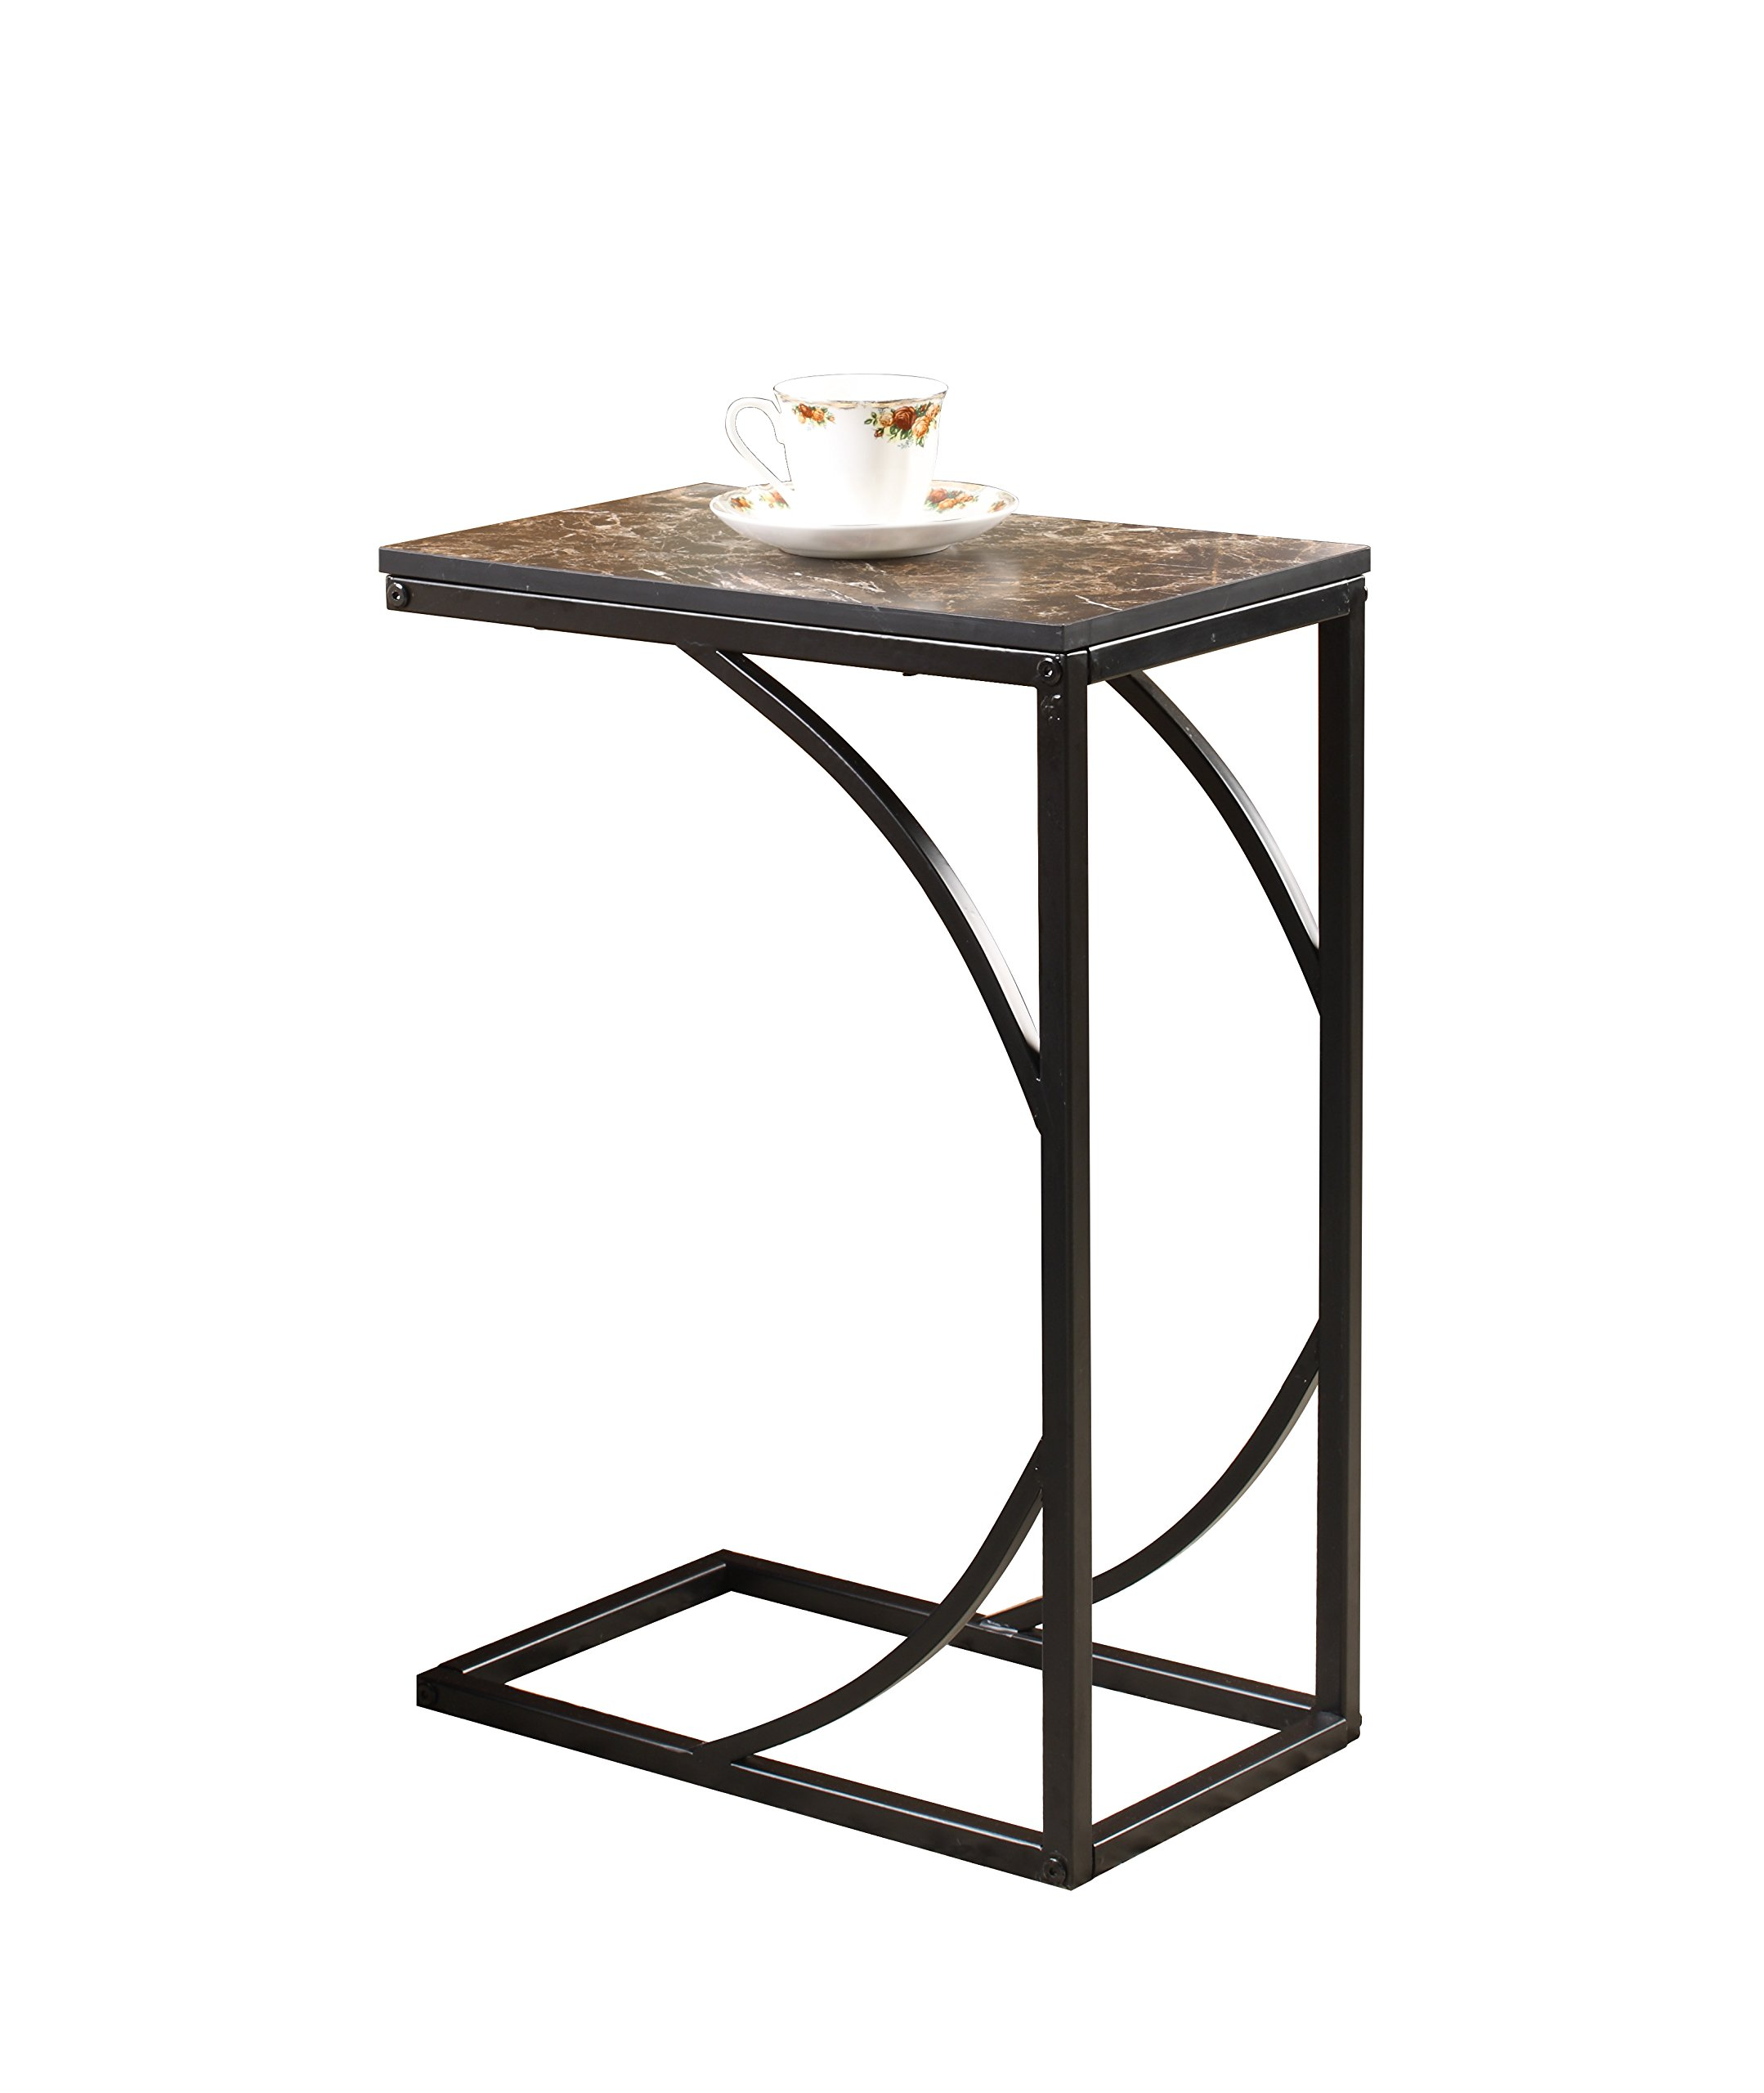 Pilaster Designs - Metal With Marble Finish Top Magazine Snack Side Sofa Table